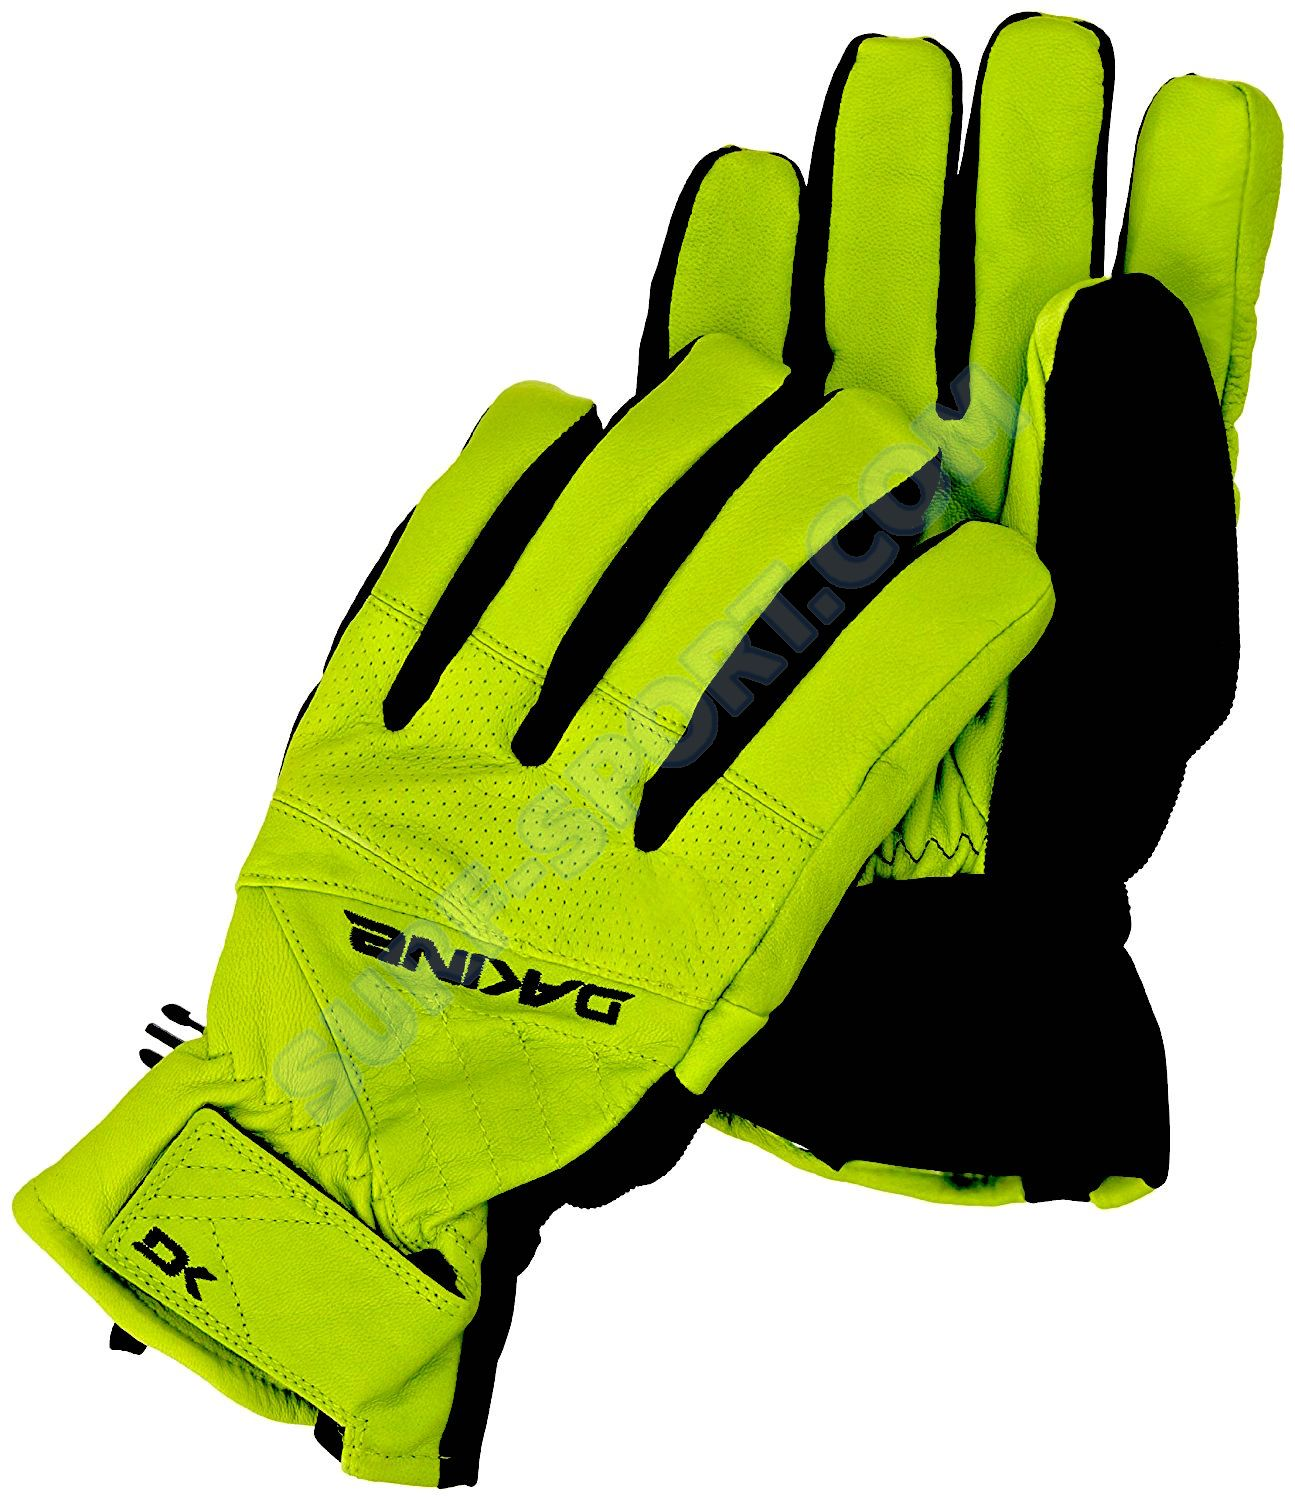 Dakine Daytona Gloves Lime.jpg